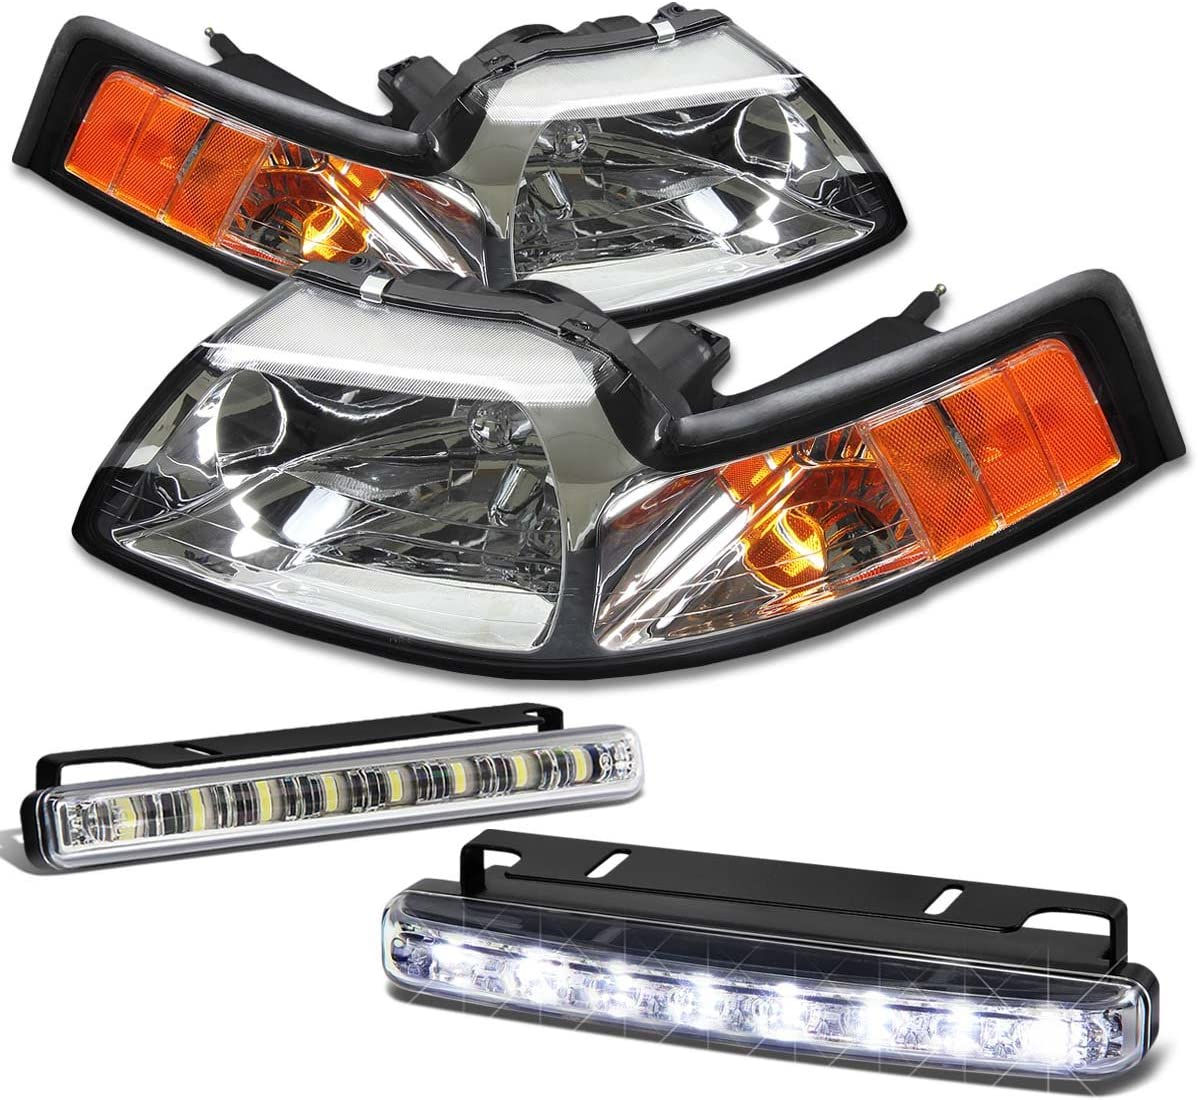 Replacement for Ford Mustang SN95 New Edge Chrome Housing Amber Corner Headlight+DRL 8 LED Fog Light